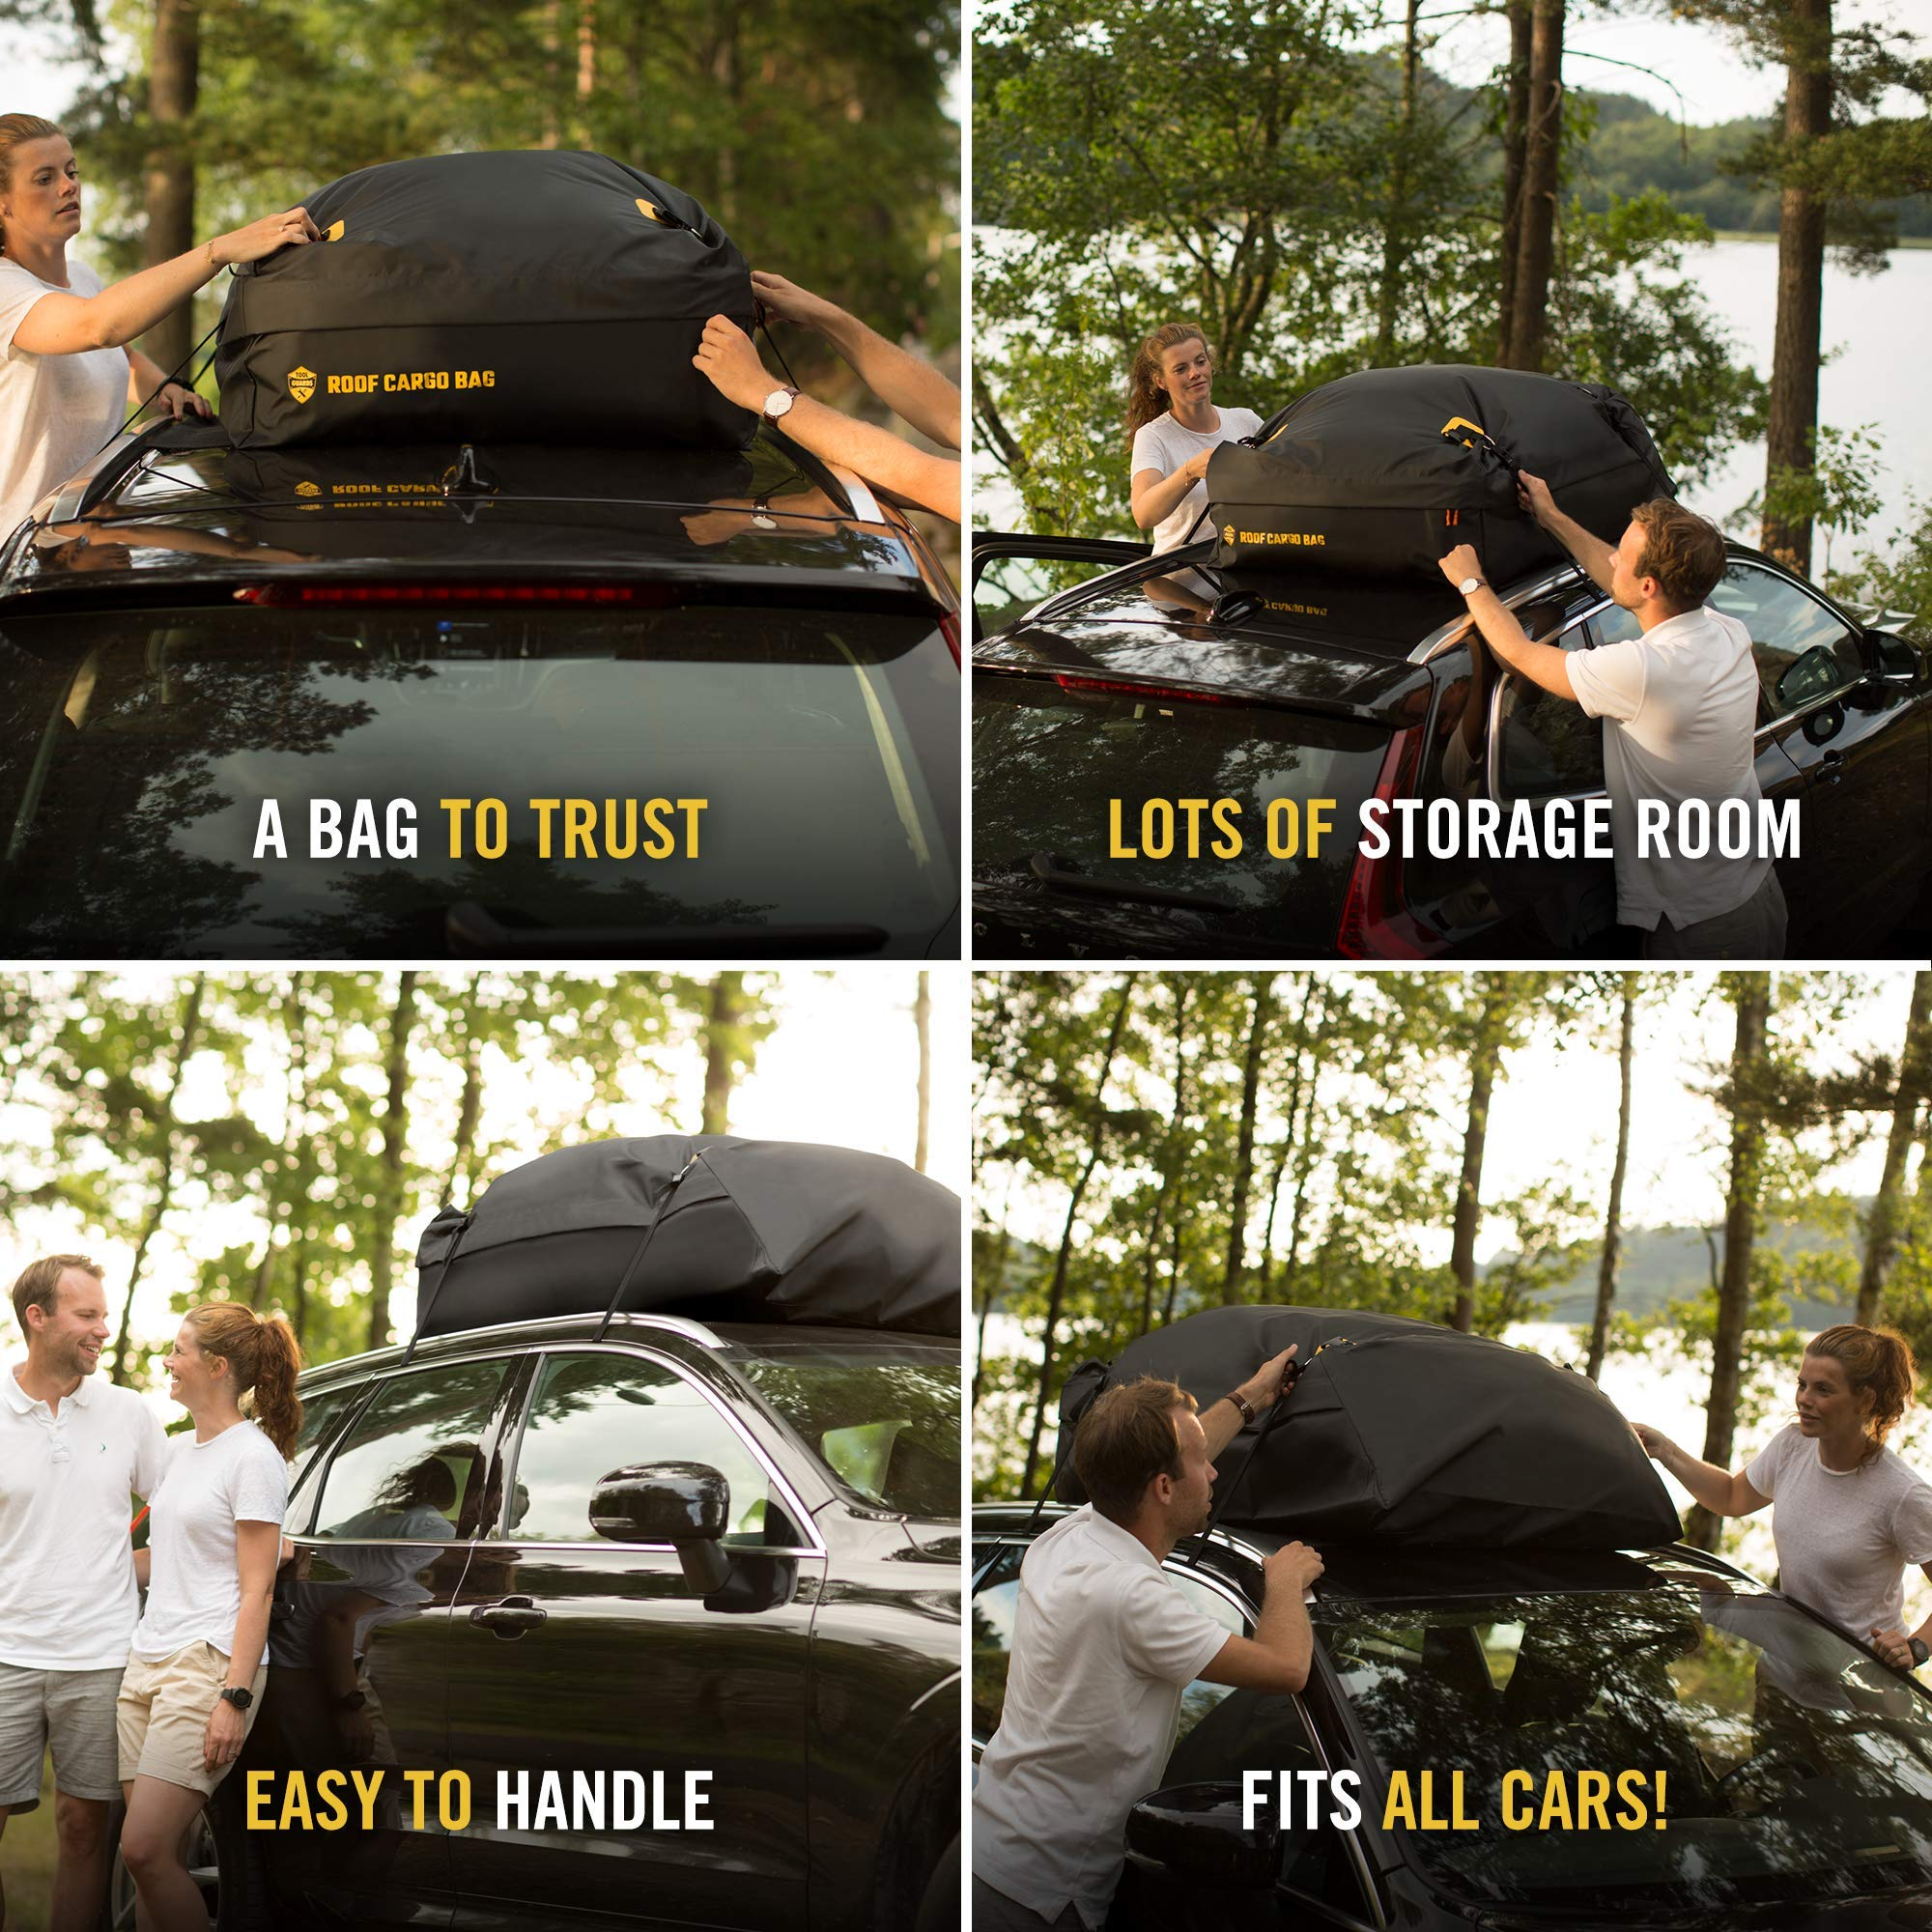 Car Top Carrier Roof Bag + Protective Mat - 100% Waterproof & Coated Zippers 15 Cubic ft - for Cars with or Without Racks by ToolGuards (Image #5)